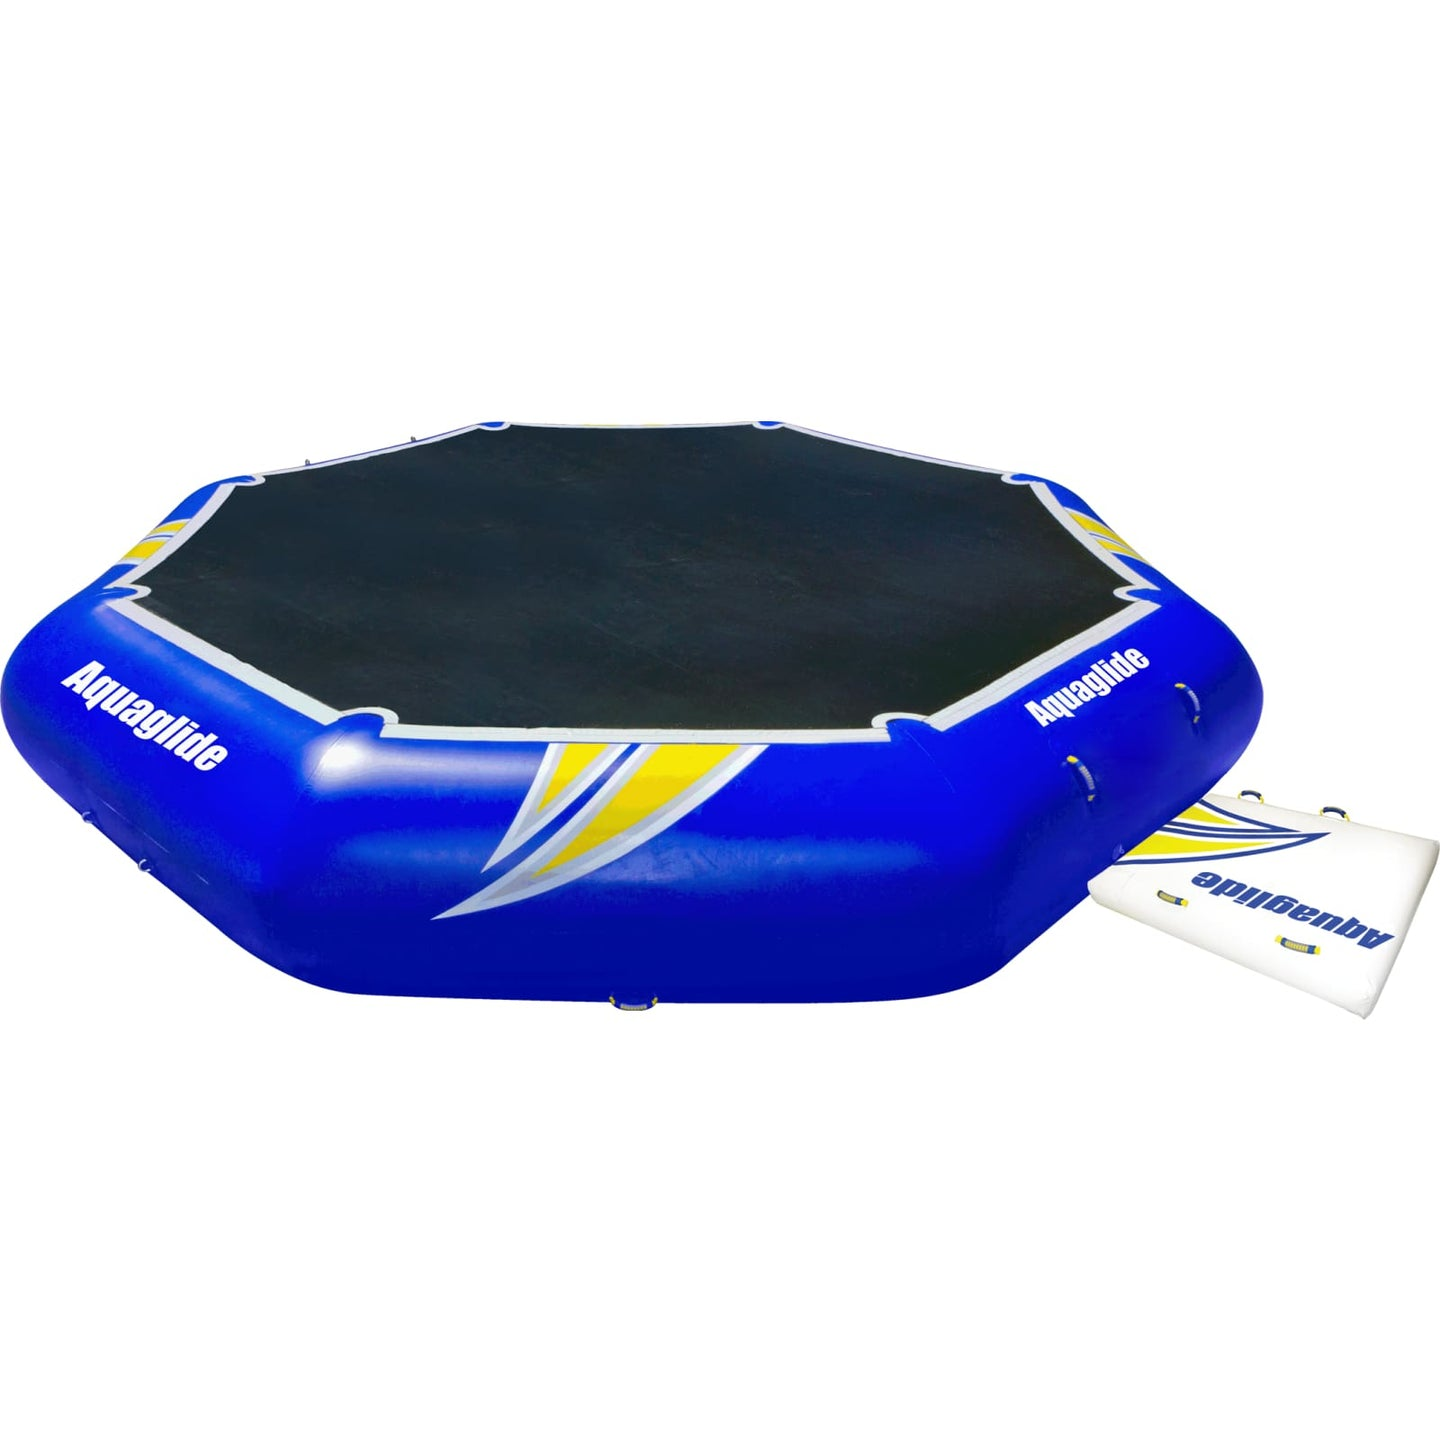 Aquaglide Rebound 20 Water Bouncer - 585219623 - Water Bouncers